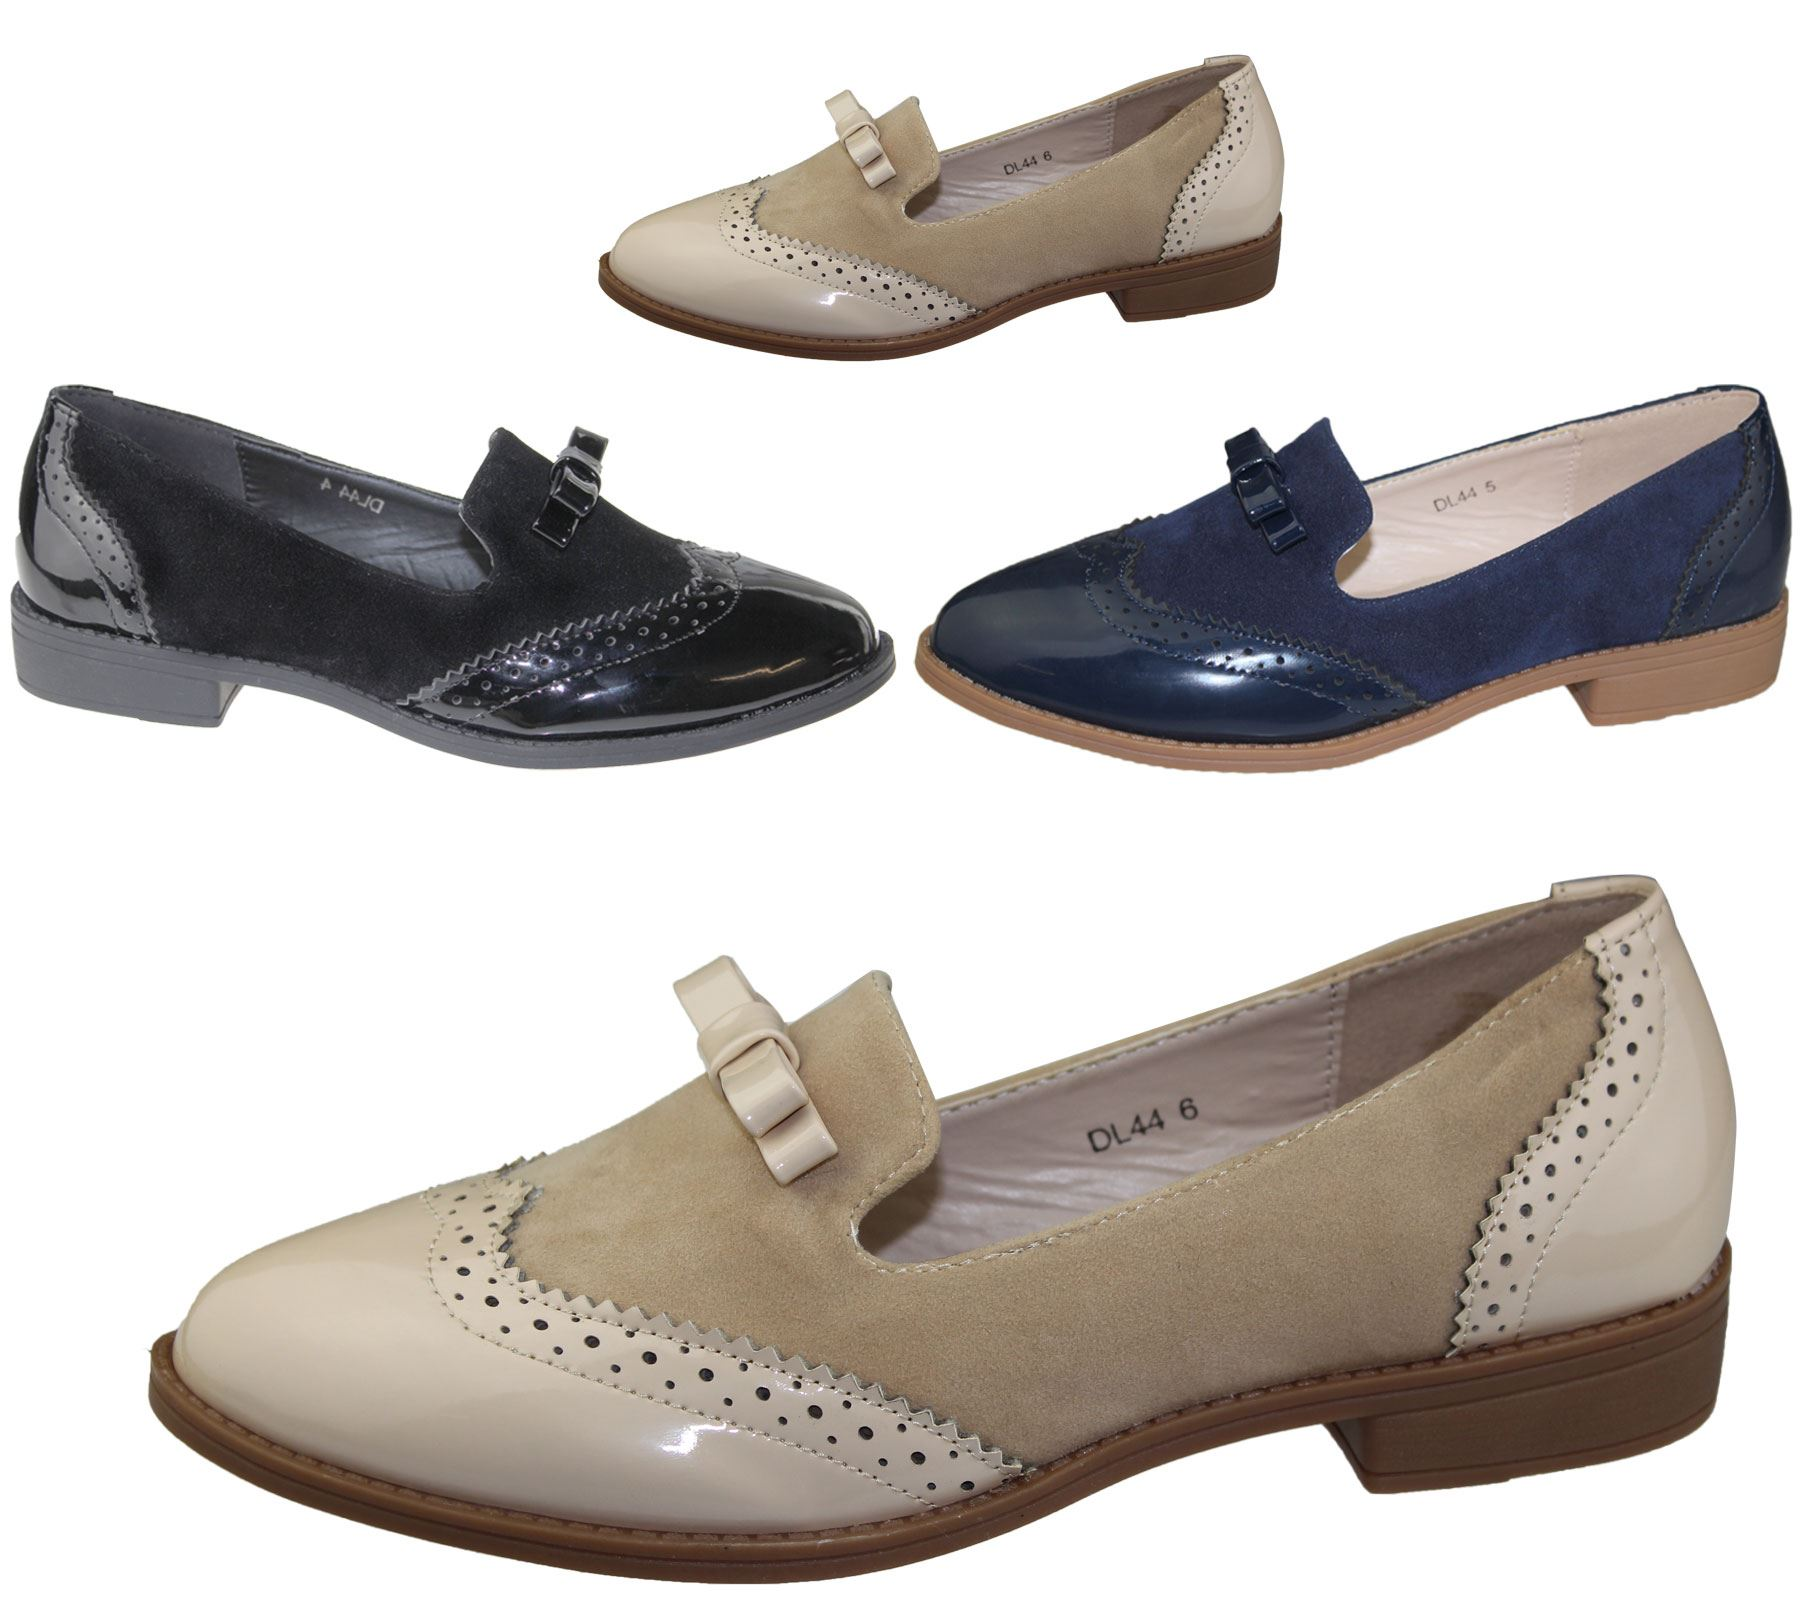 Save on Women's shoes at lemkecollier.ga We have all styles of comfort shoes, casual shoes, boots, heels and more for women. Free shipping and free returns available. Save on Women's shoes at lemkecollier.ga We have all styles of comfort shoes, casual shoes, boots, heels and more for women. Free shipping and free returns available.